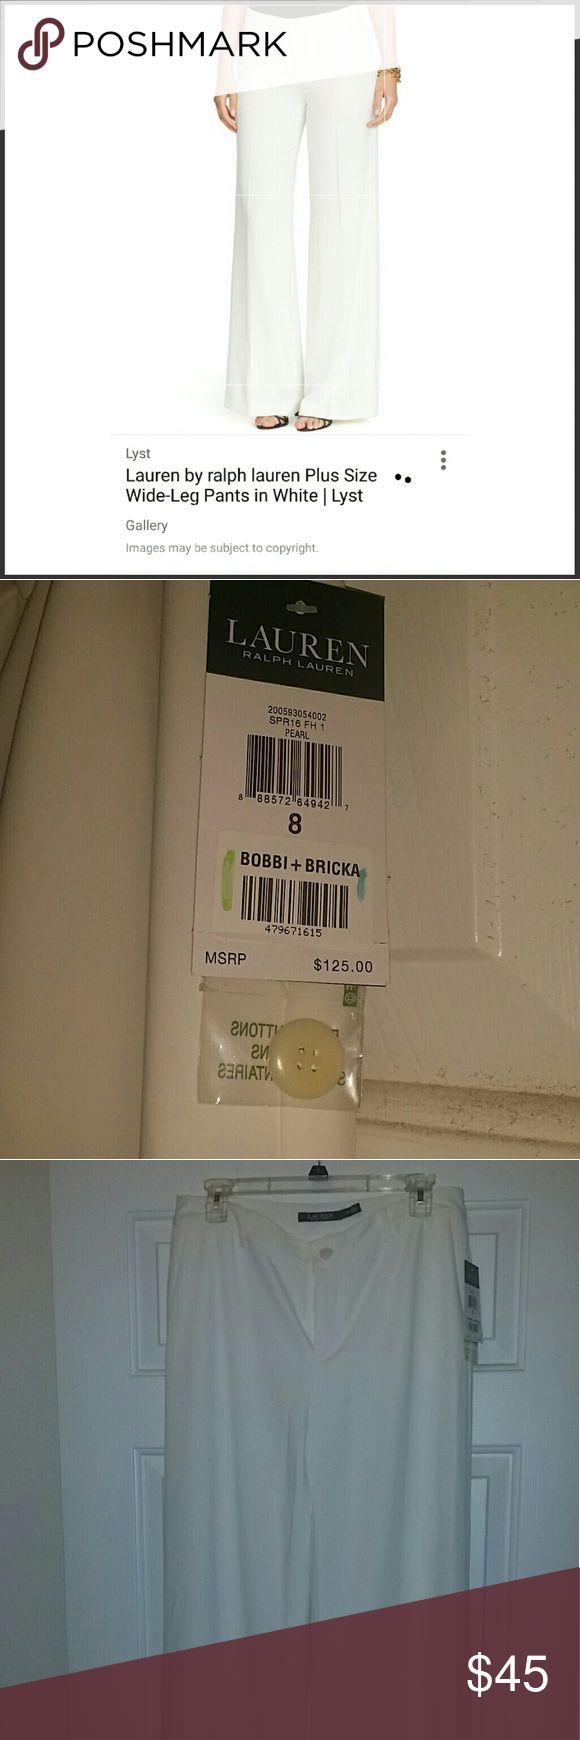 Nwt ralph lauren wide leg cream pants Cream pants. New with tags. Size 8. Wide leg. Very nice. Described as pearl -off white. Full length Ralph Lauren Pants Wide Leg